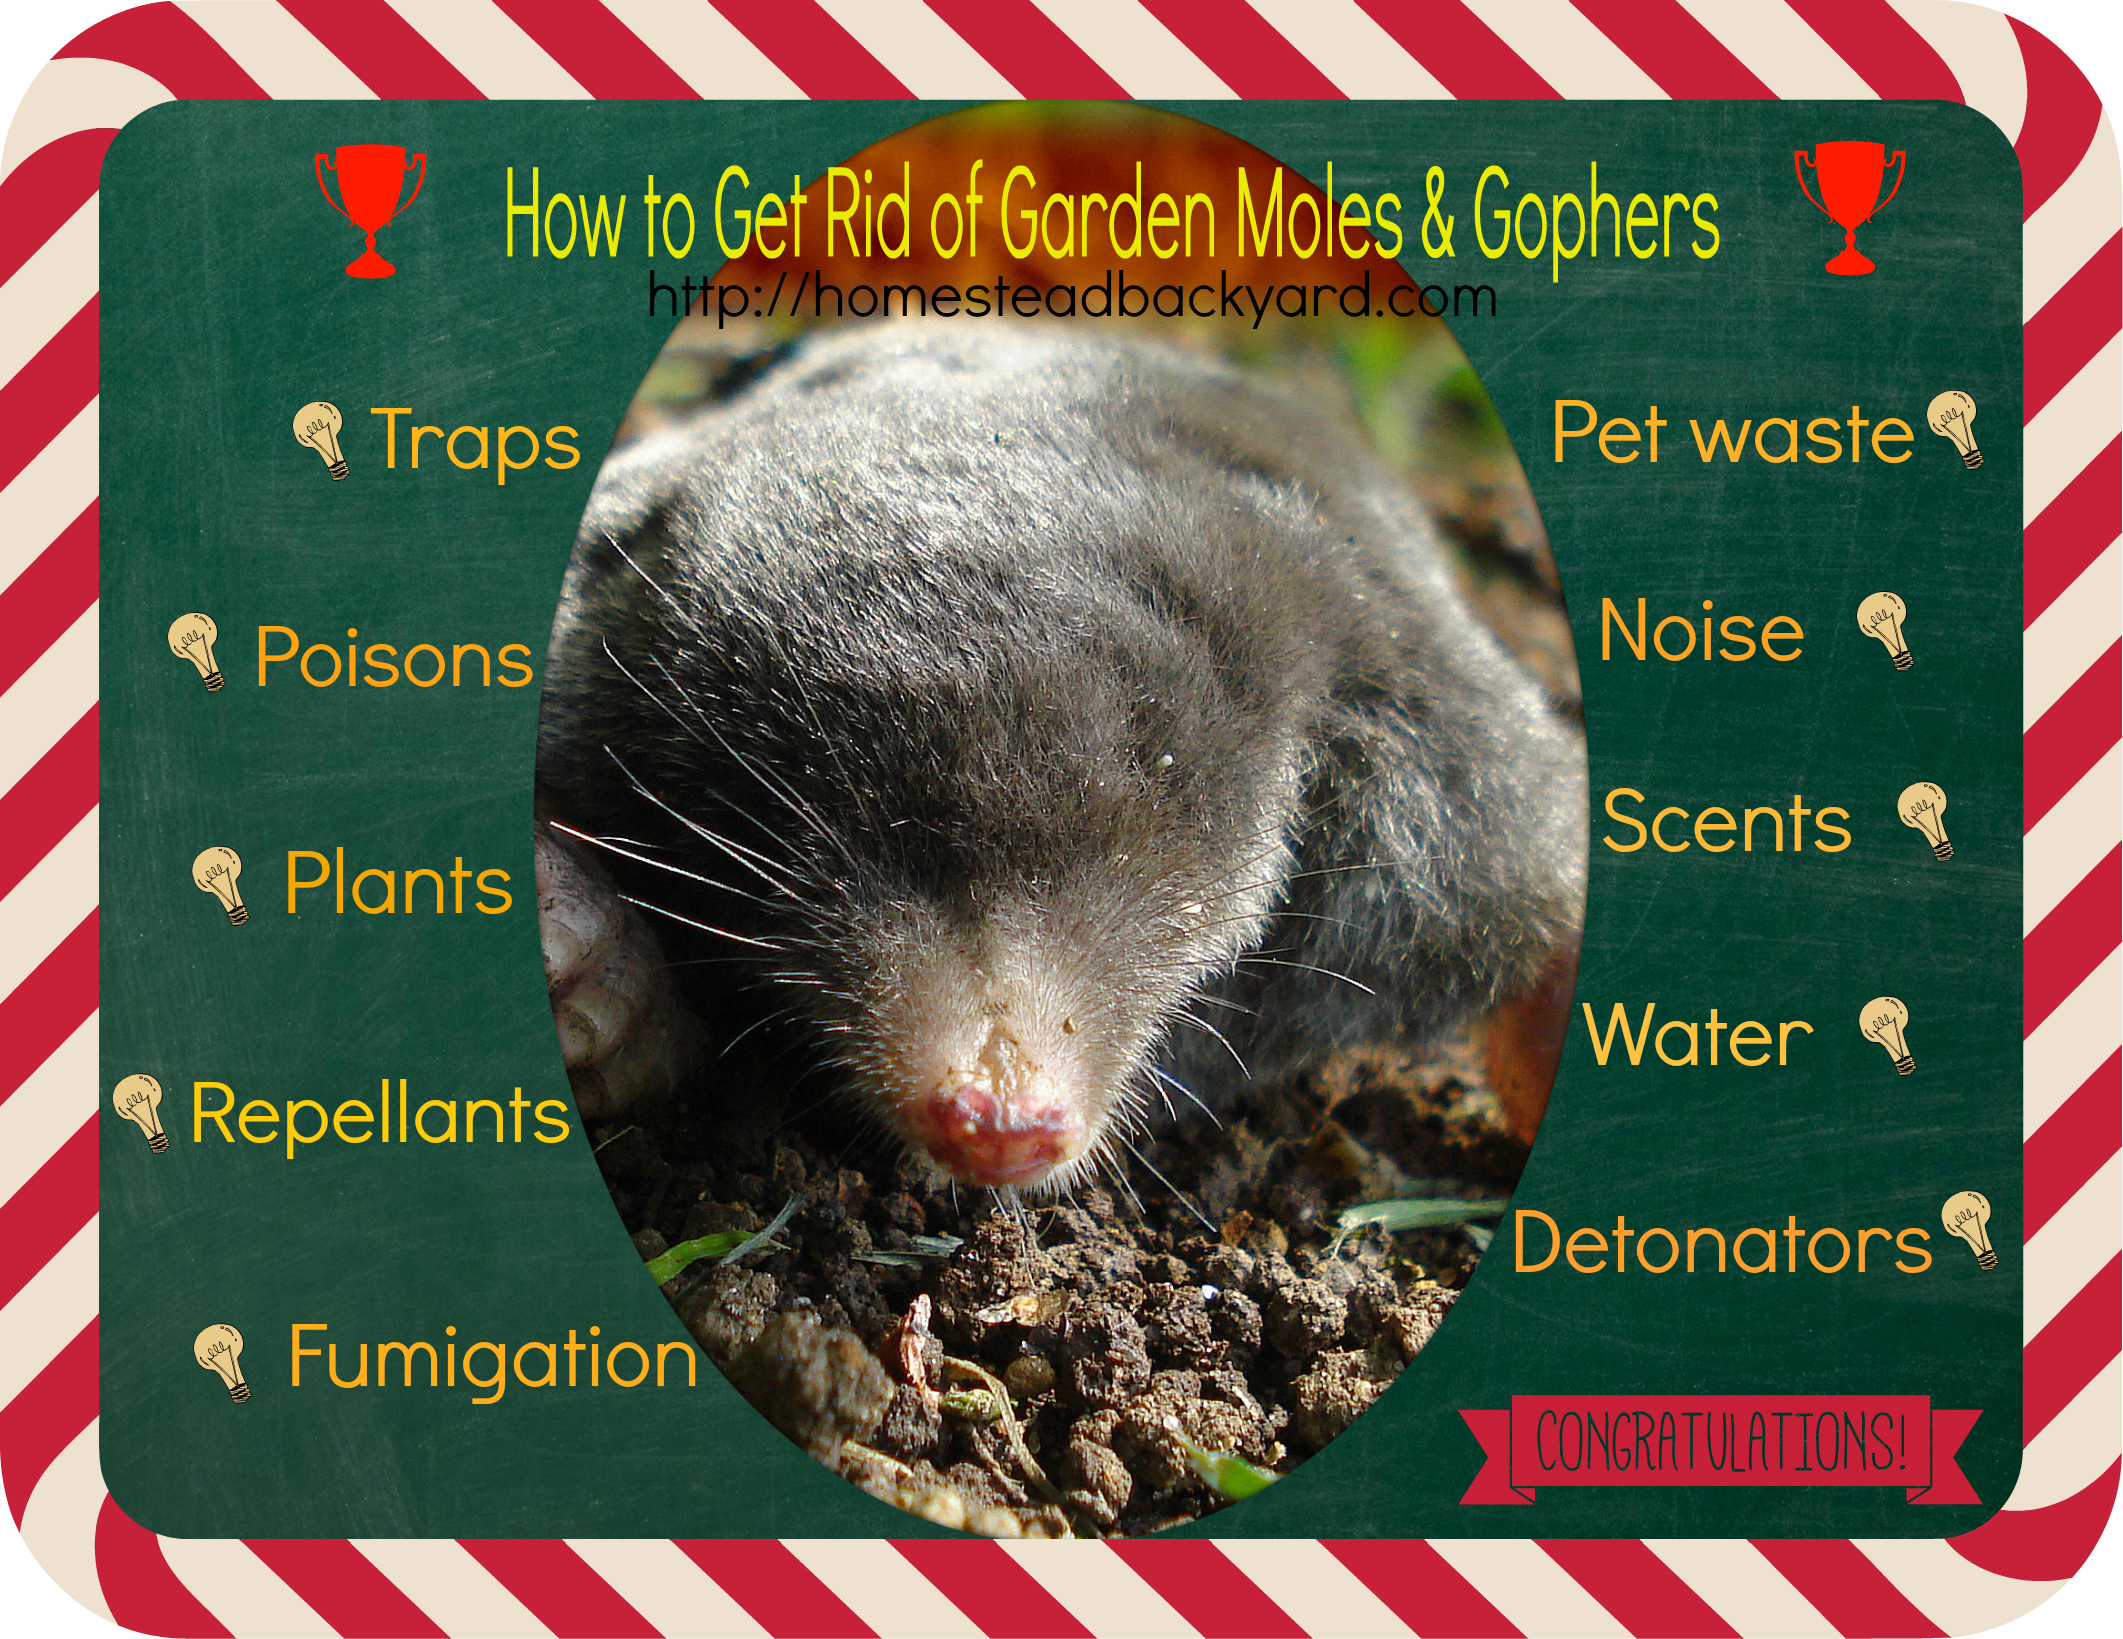 How to Get Rid of Garden Moles Gophers